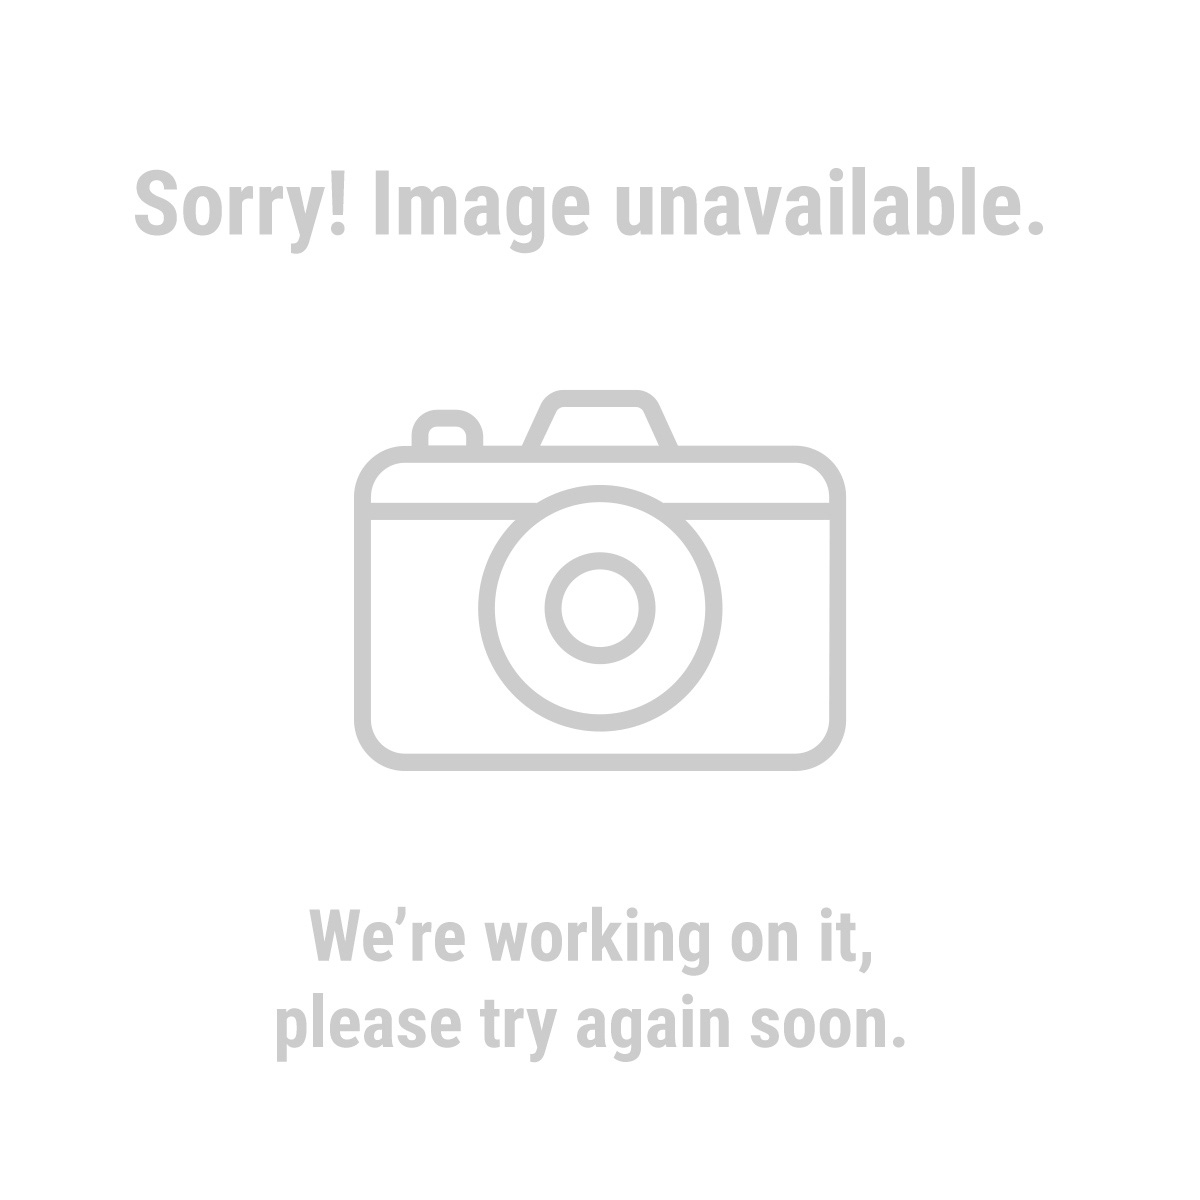 Harbor Freight Battery Tester : Preparing for hard times batteries and battery testers